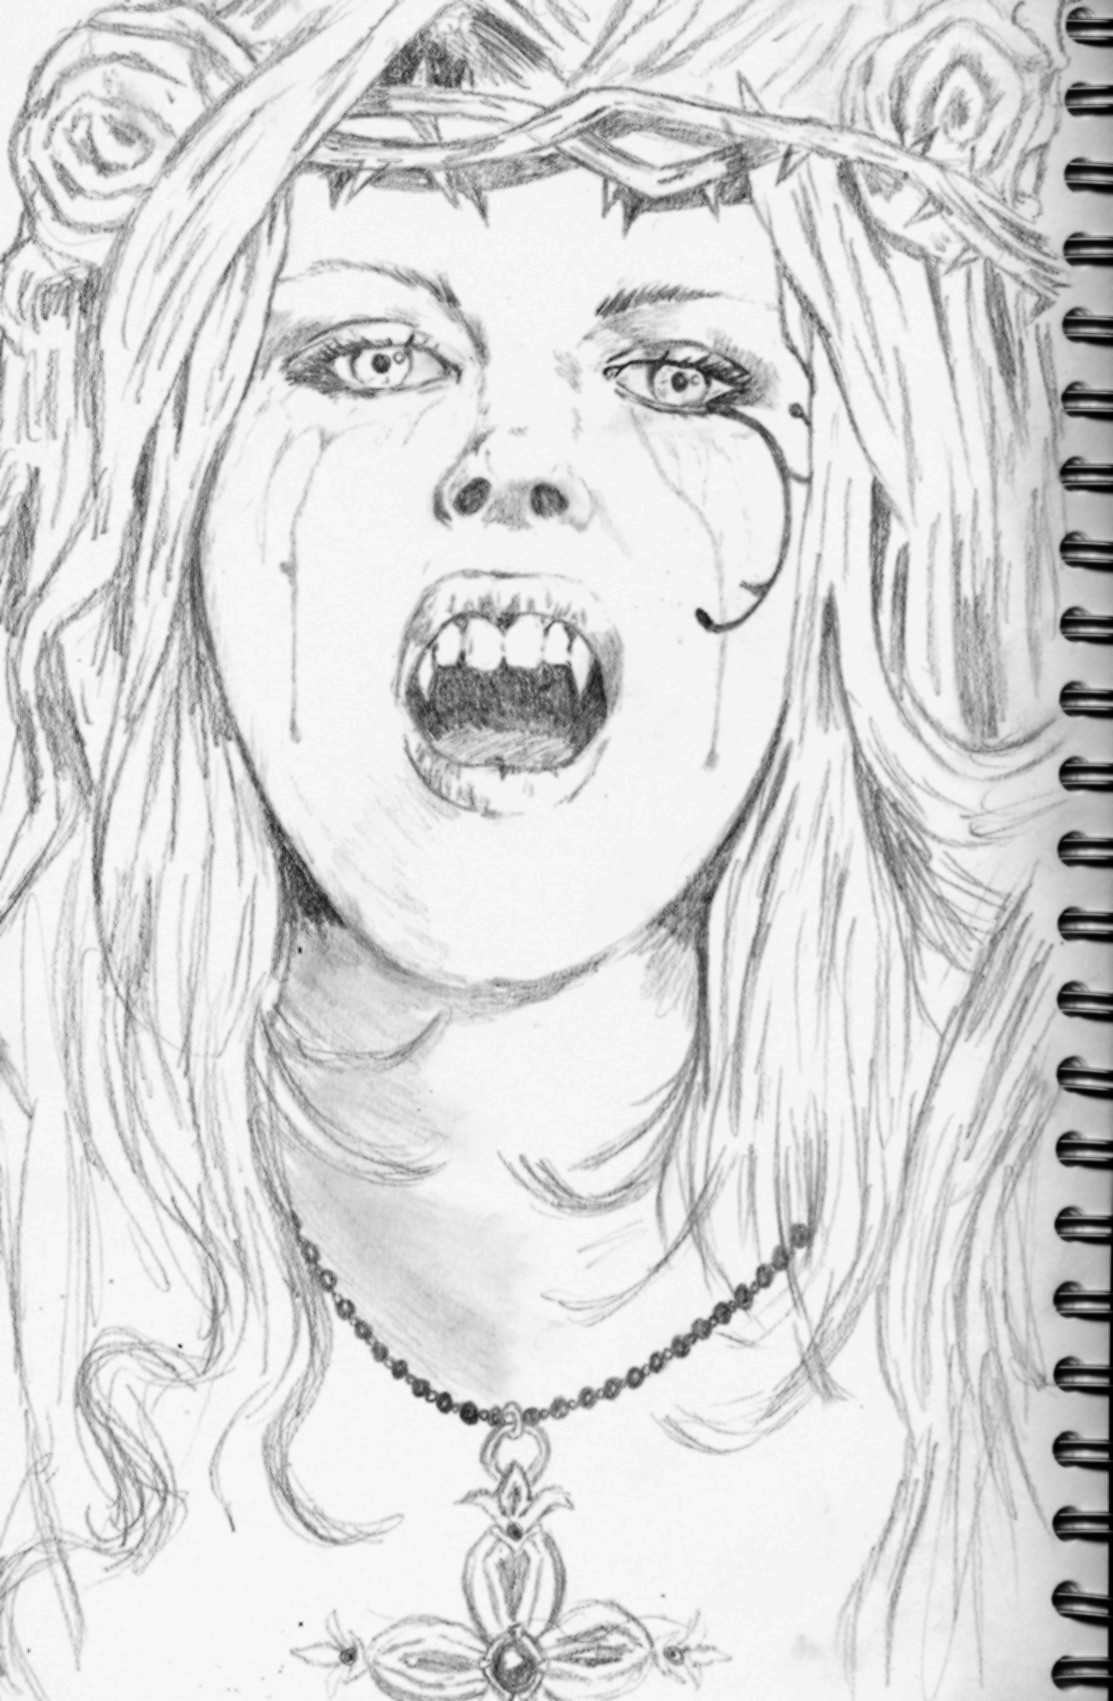 Drawn vampire sketch Victoria drawings frances madmanmanga art